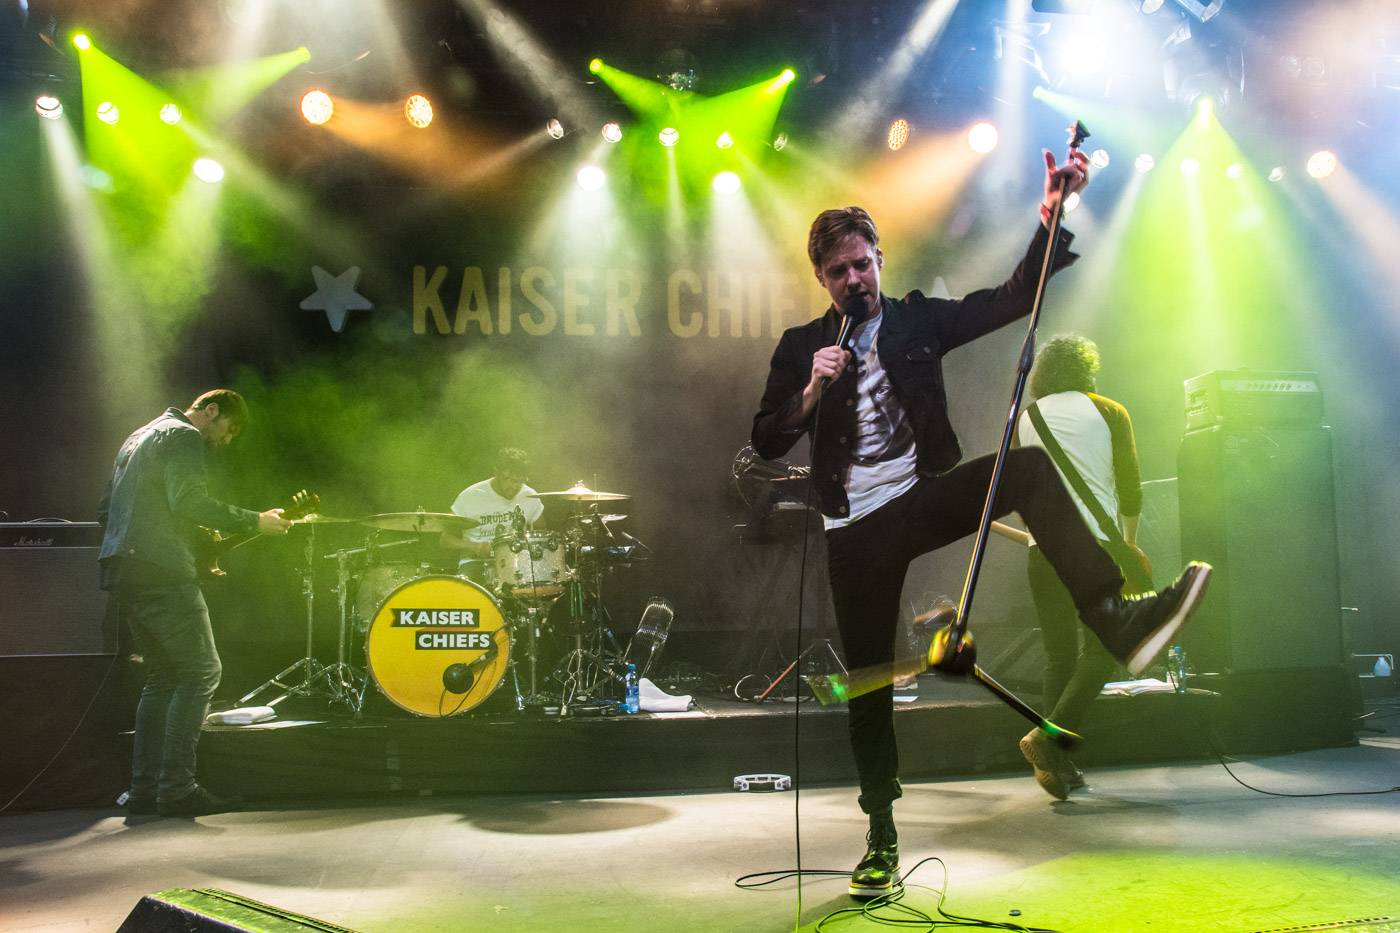 Kaiser Chiefs at the Commodore Ballroom, Vancouver, Apr. 21 2015. Pavel Boiko photo.